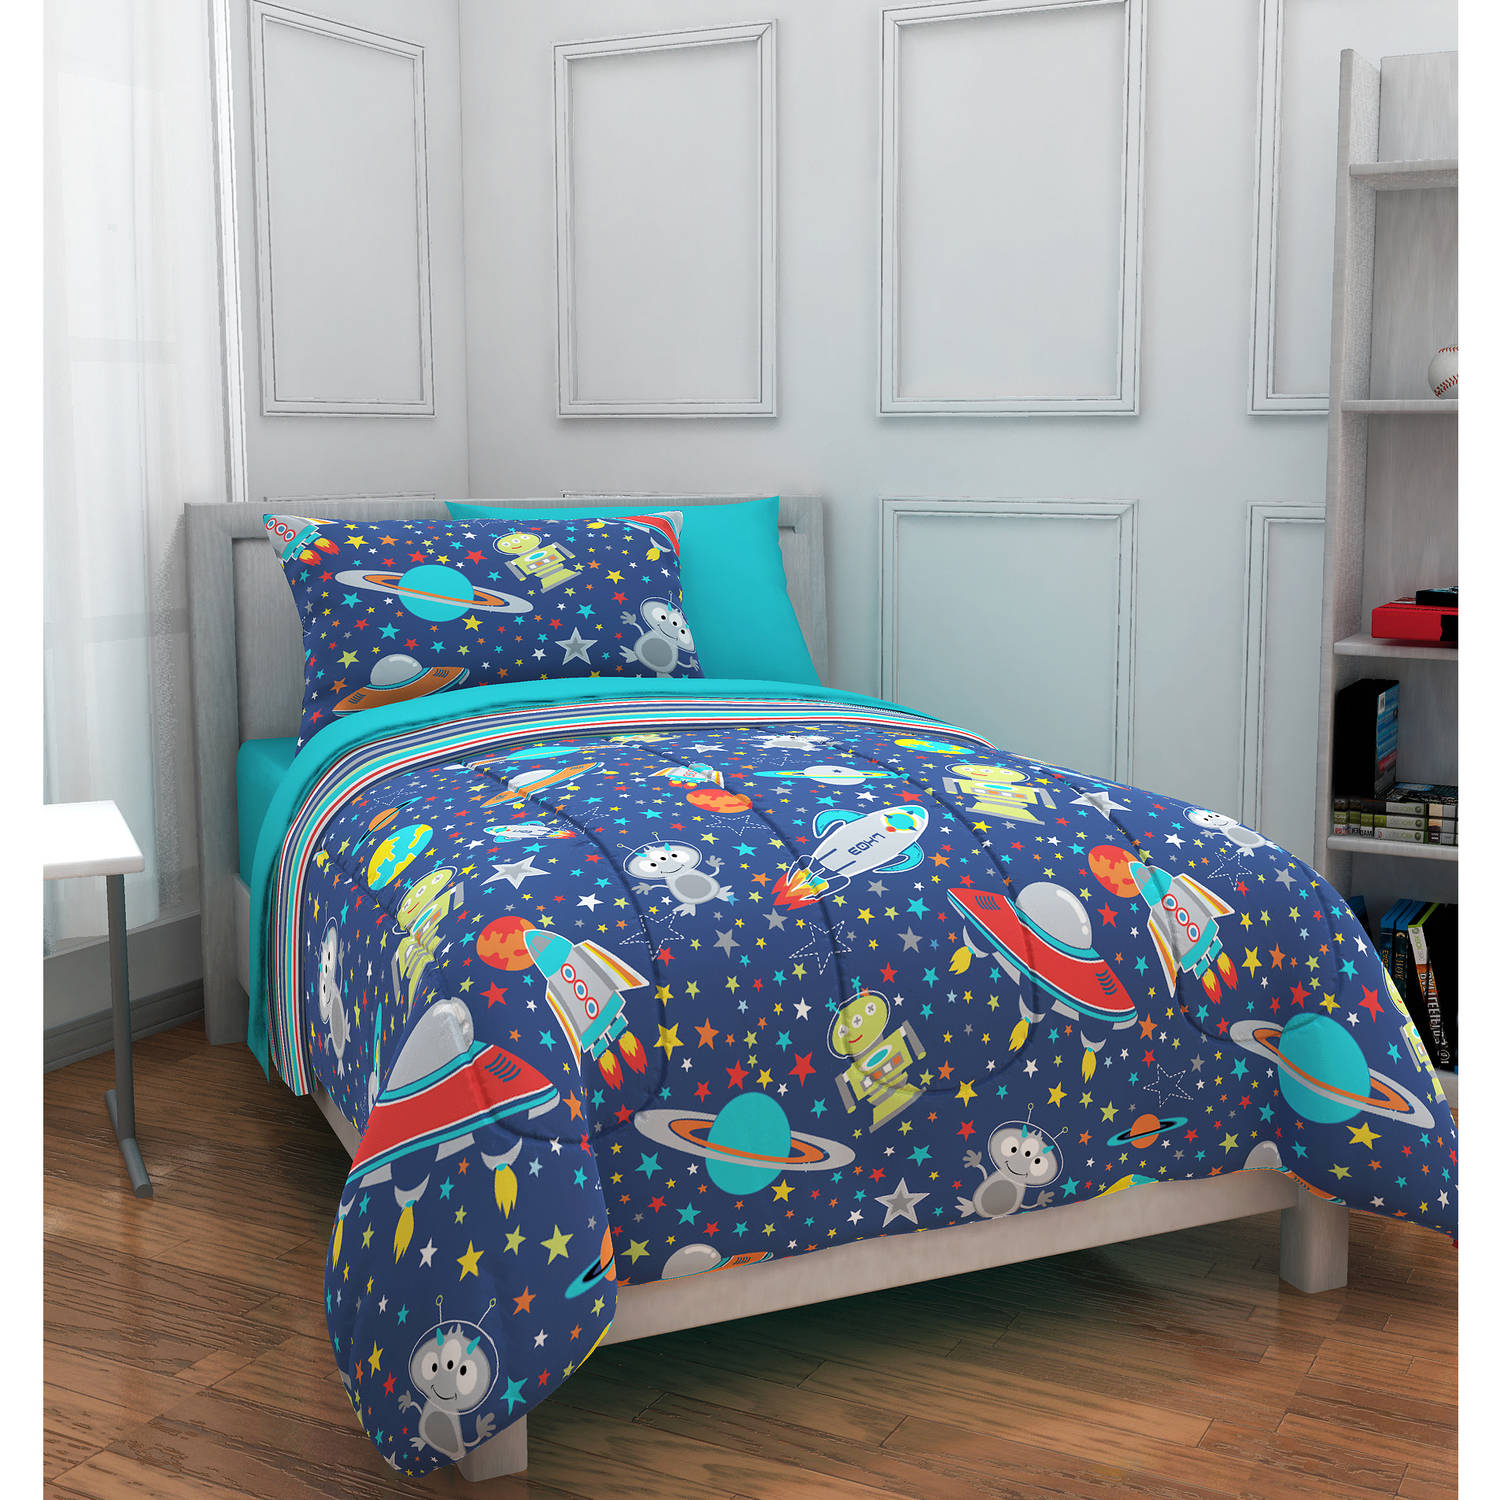 Mainstays Kids Outer Space Bed in a Bag Bedding Set